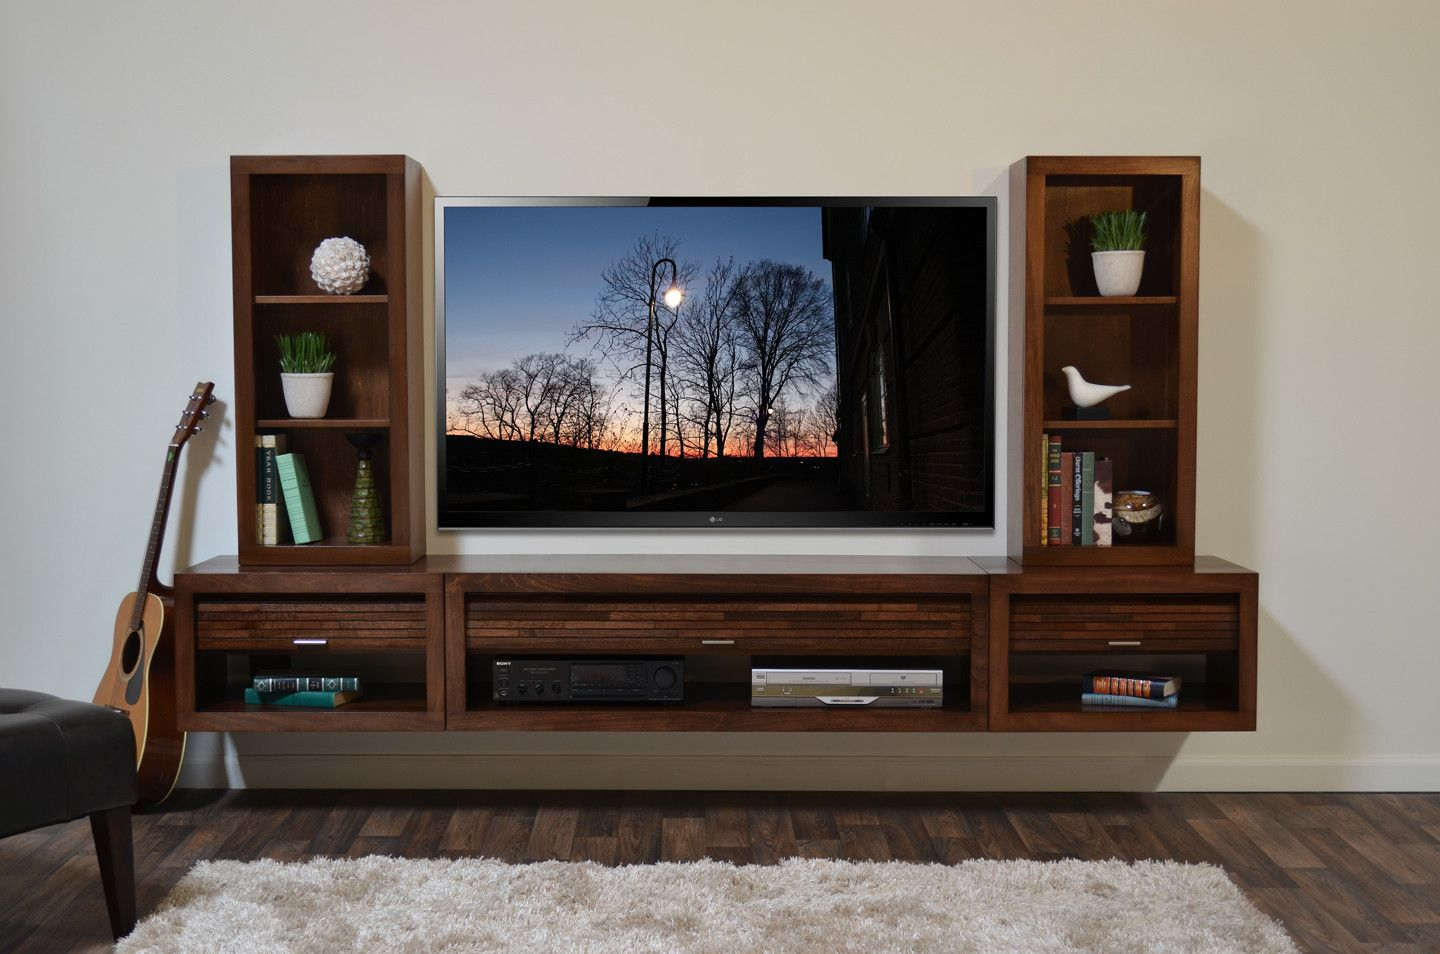 Merveilleux Wall Mounted Floating TV Entertainment Stand   ECO GEO Mocha